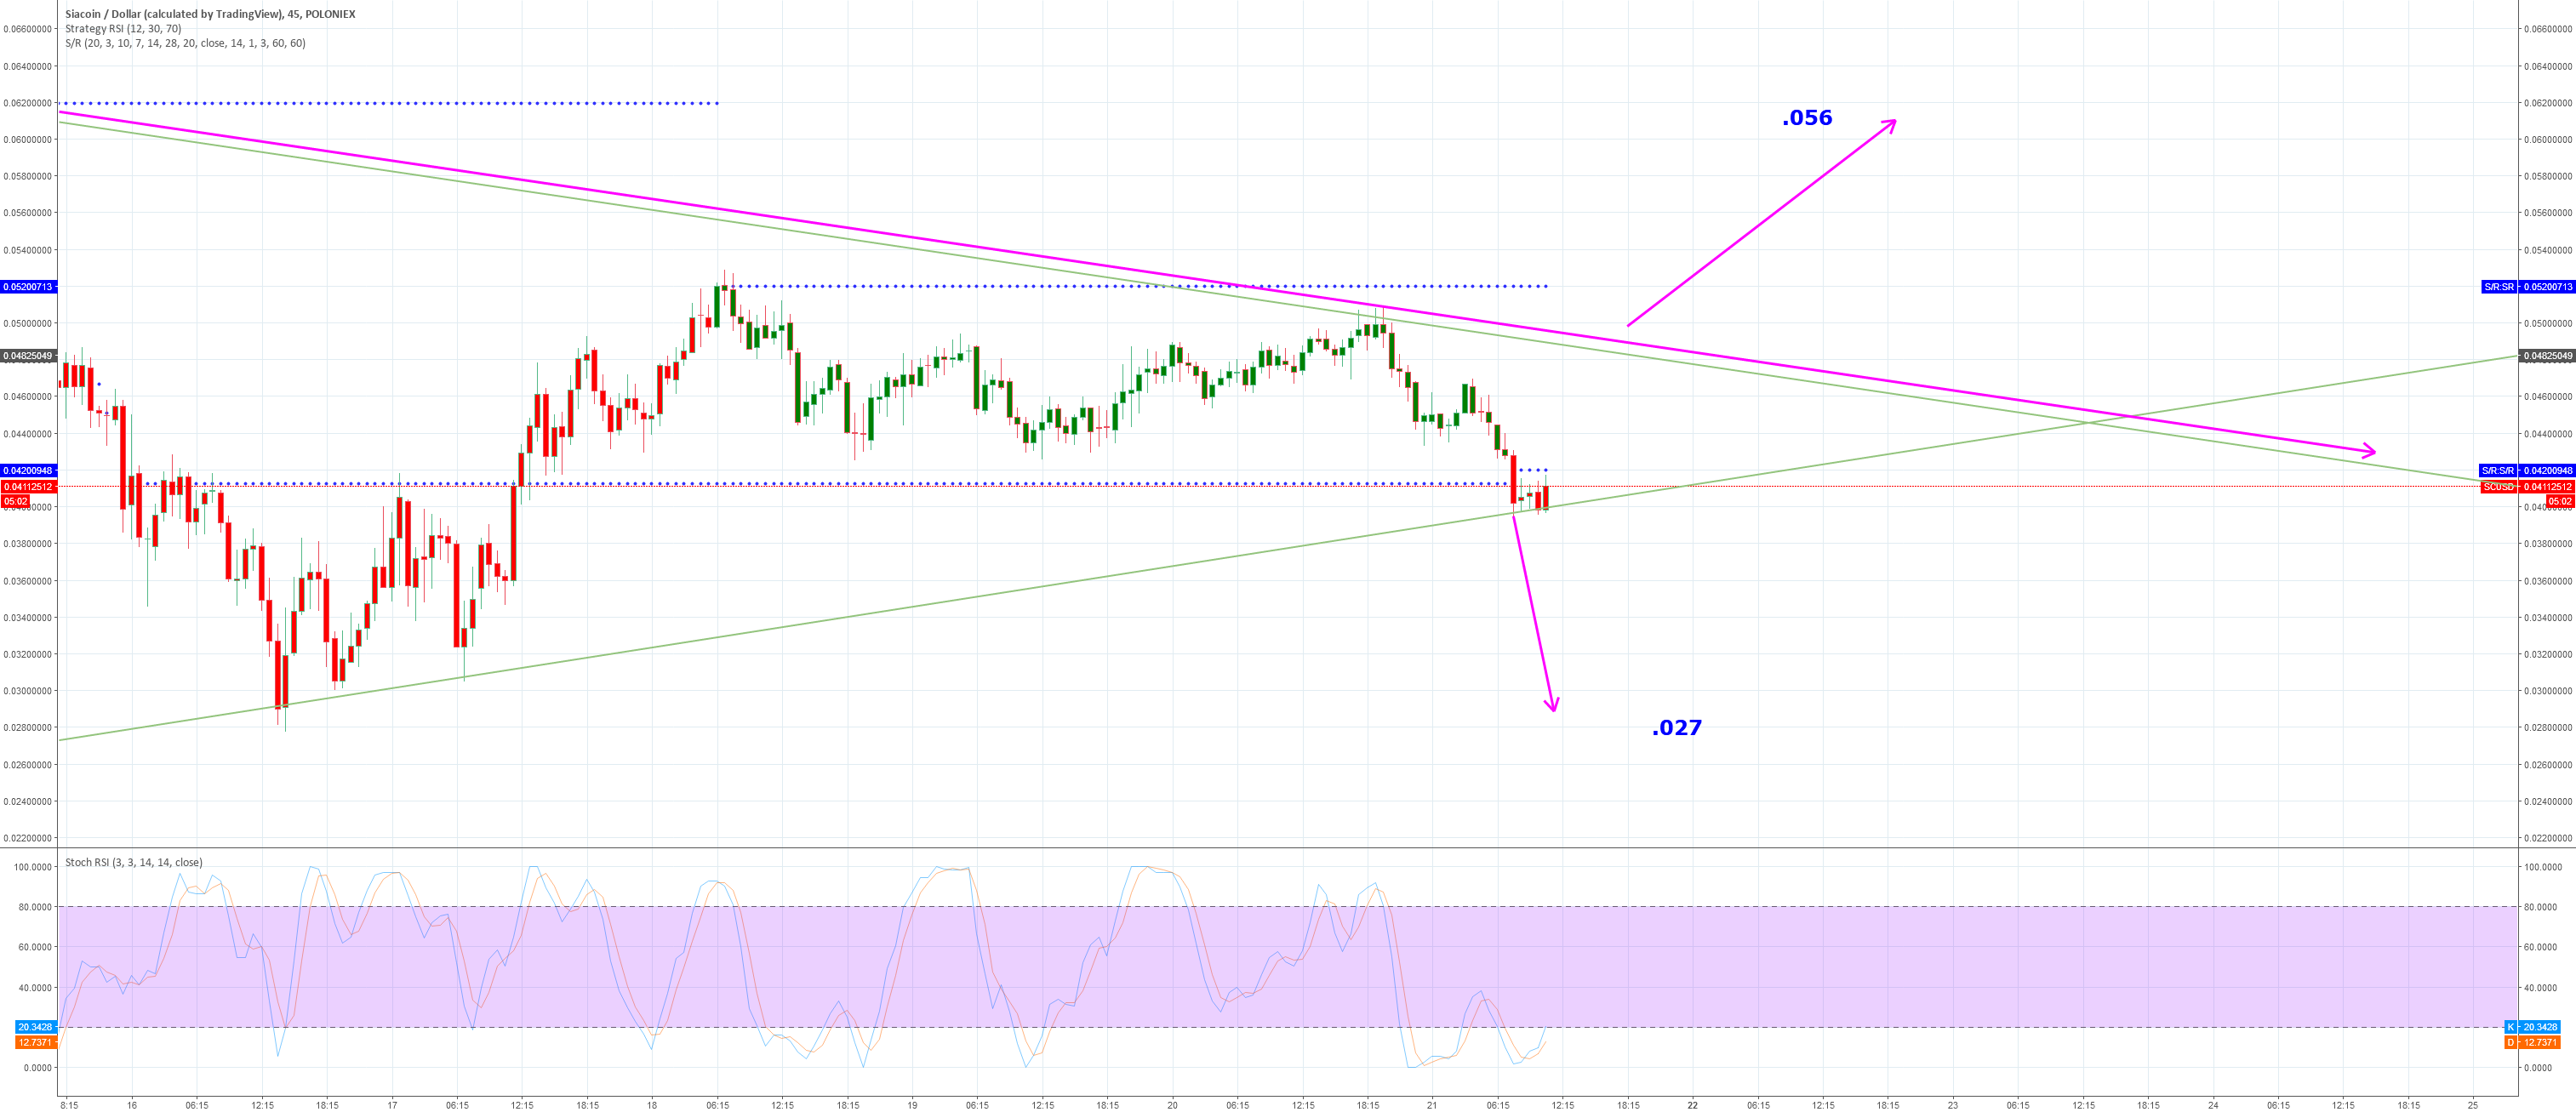 SC safe to enter once its past the pink line - target .056